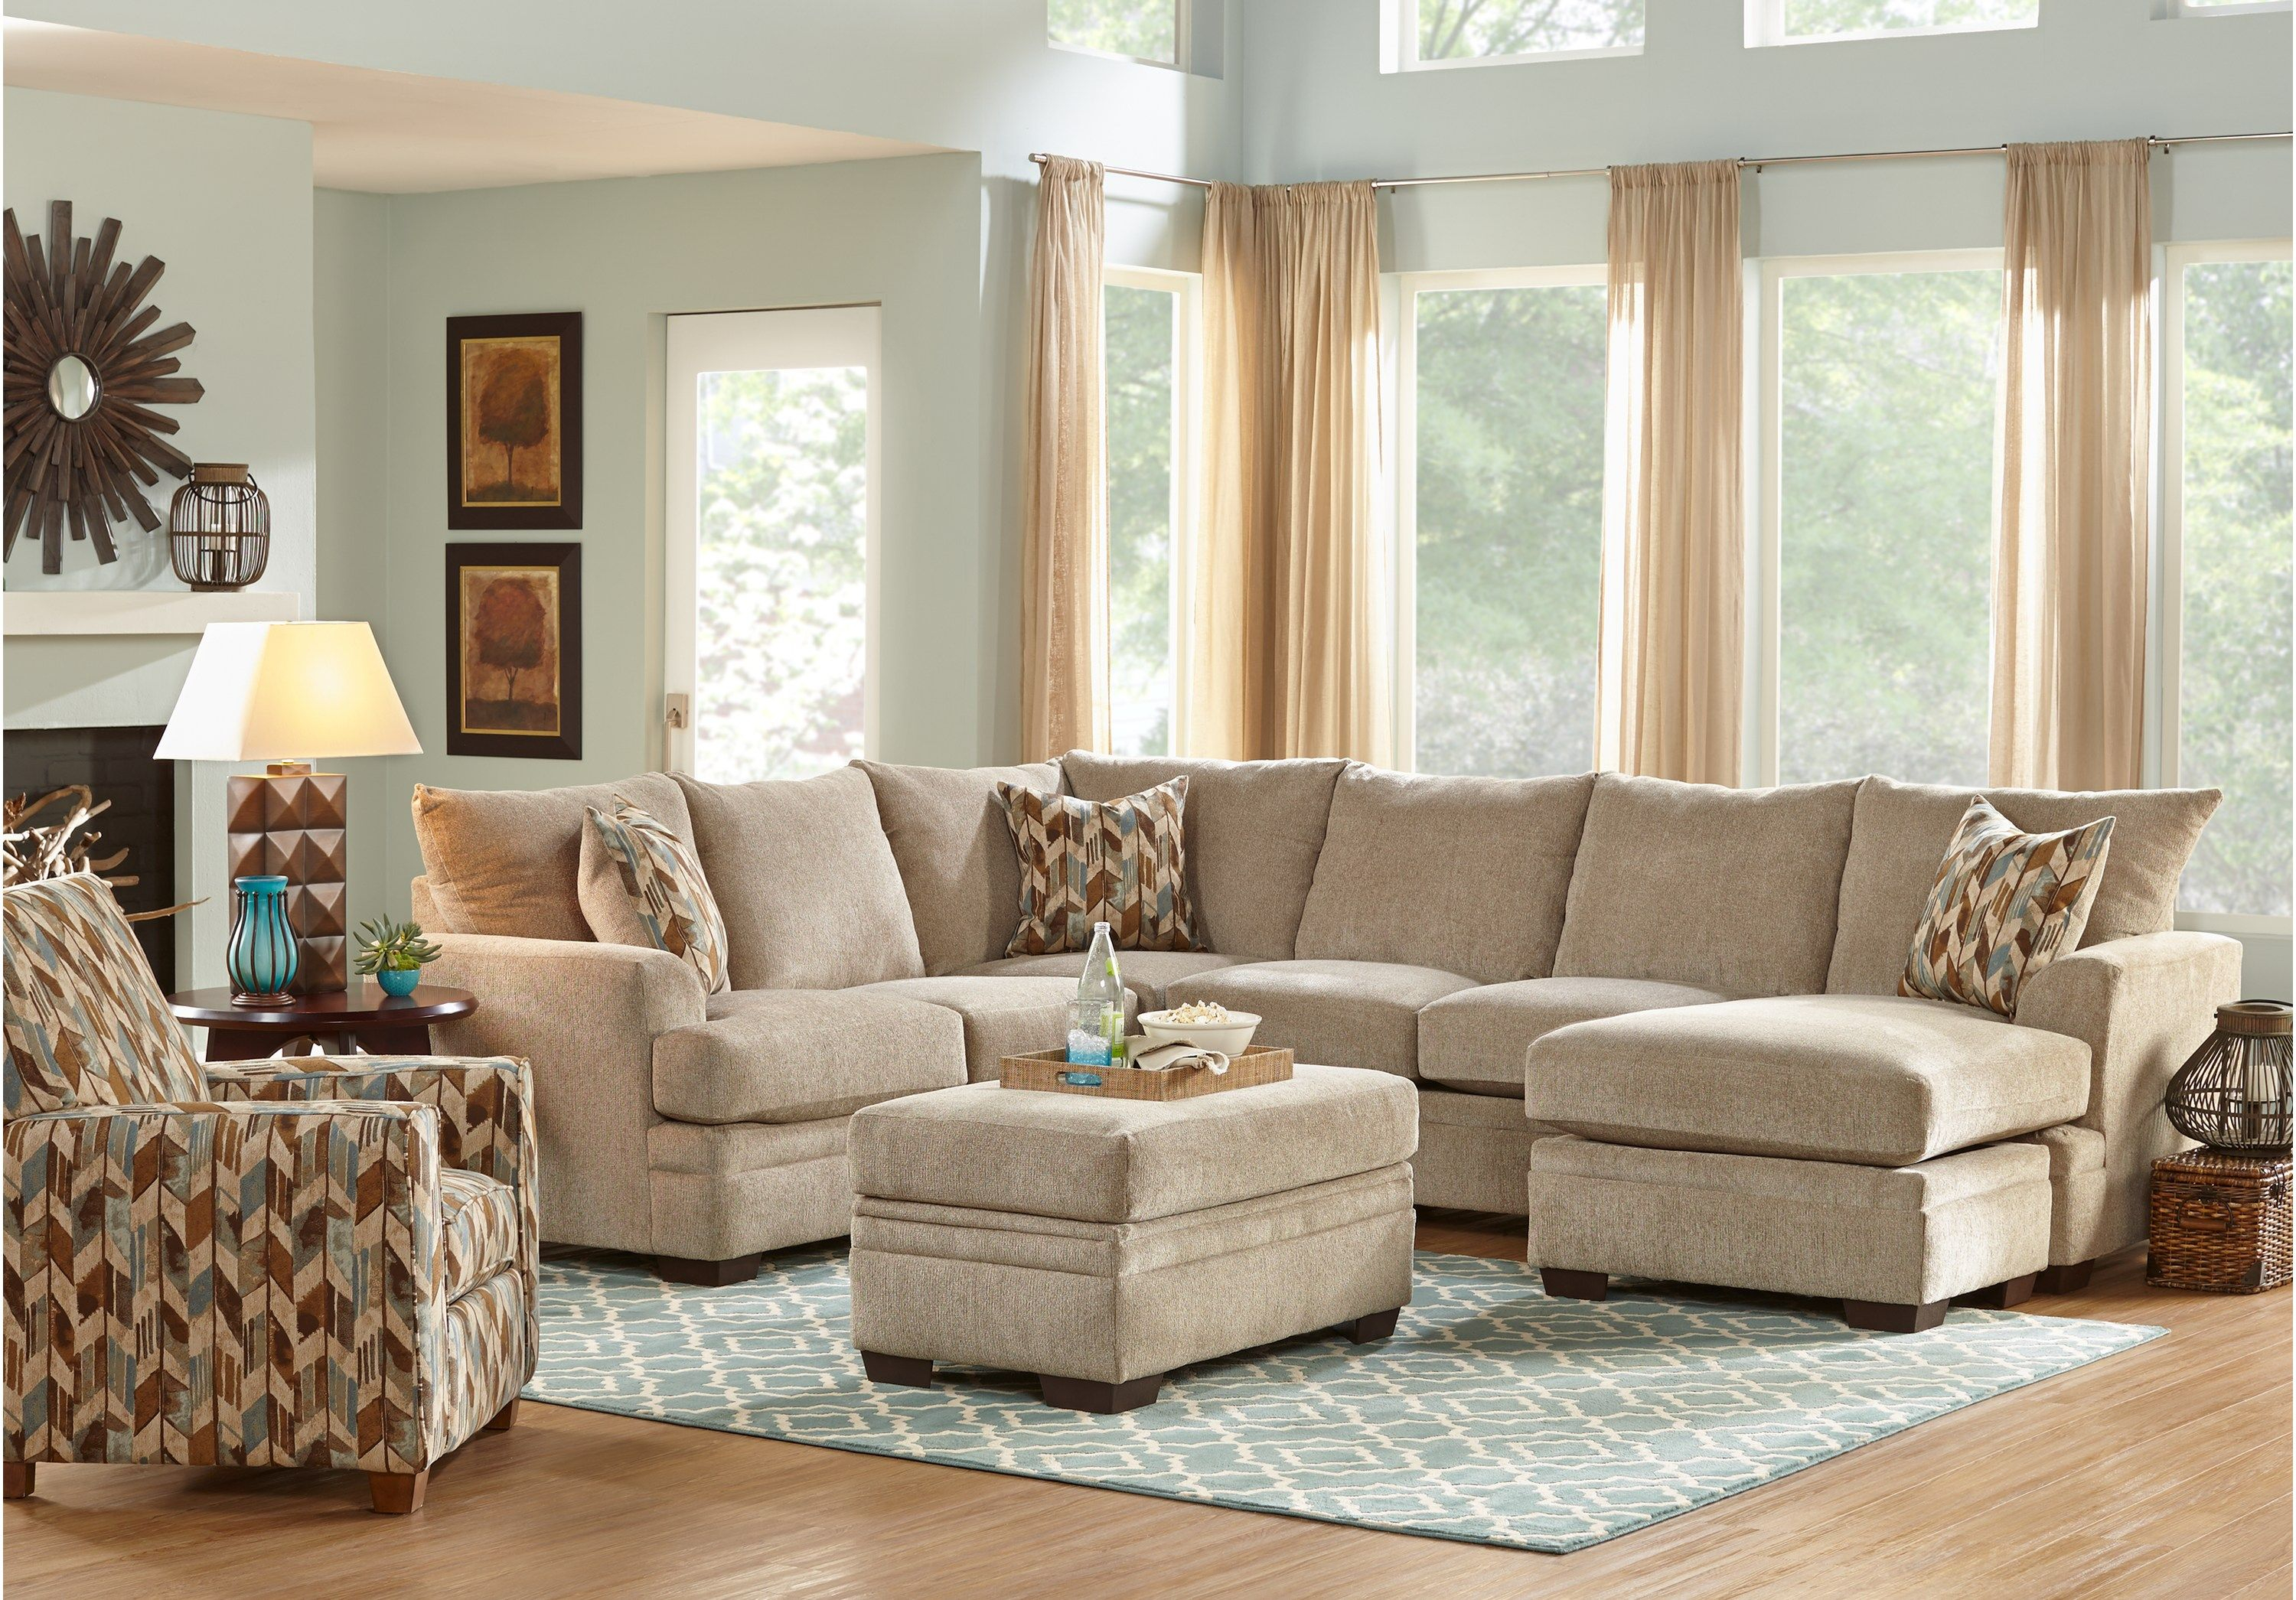 Brenton Court Platinum 3 Pc Sectional Living Room In 2019 French within 10 Smart Tricks of How to Build Rooms To Go Living Room Sets